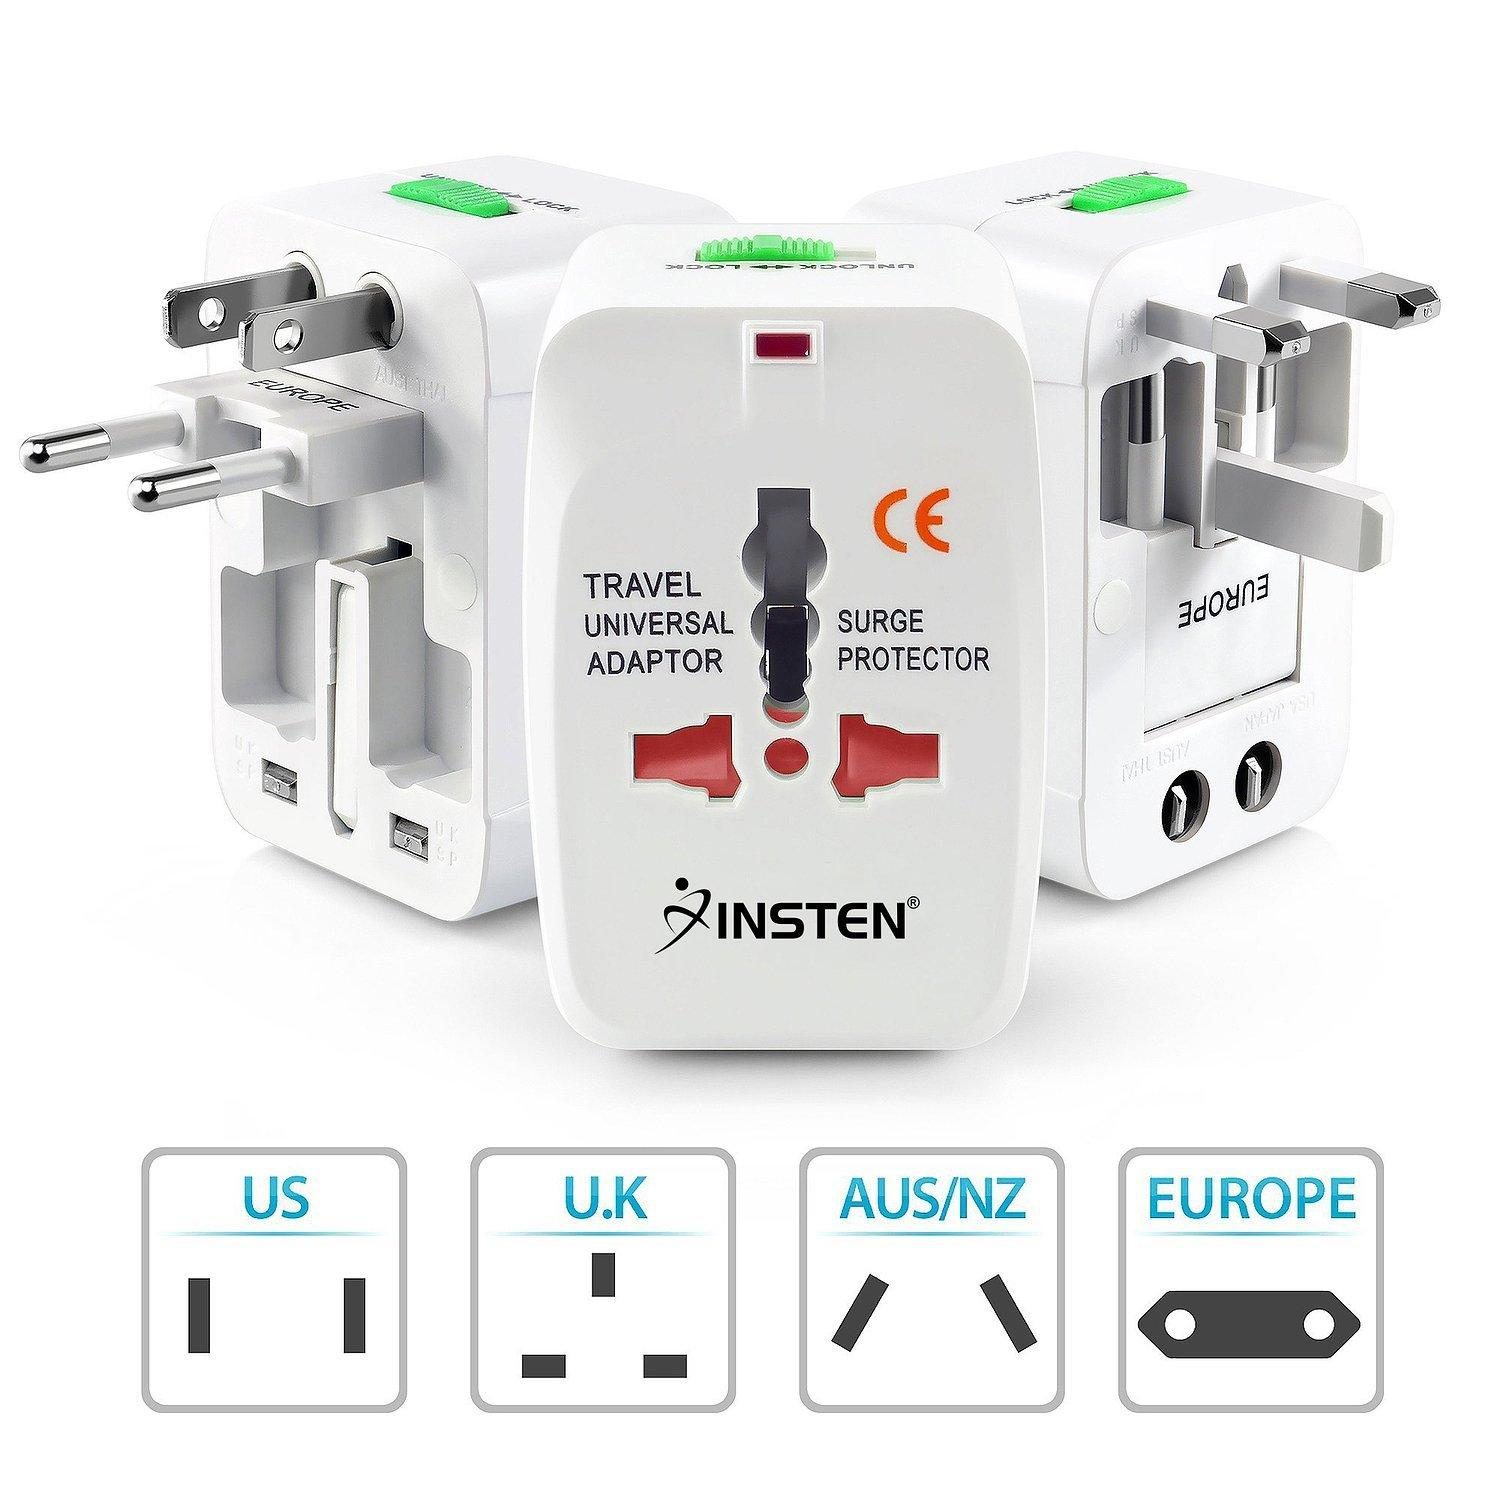 travel gadgets must have gadgets for travelers universal adapter